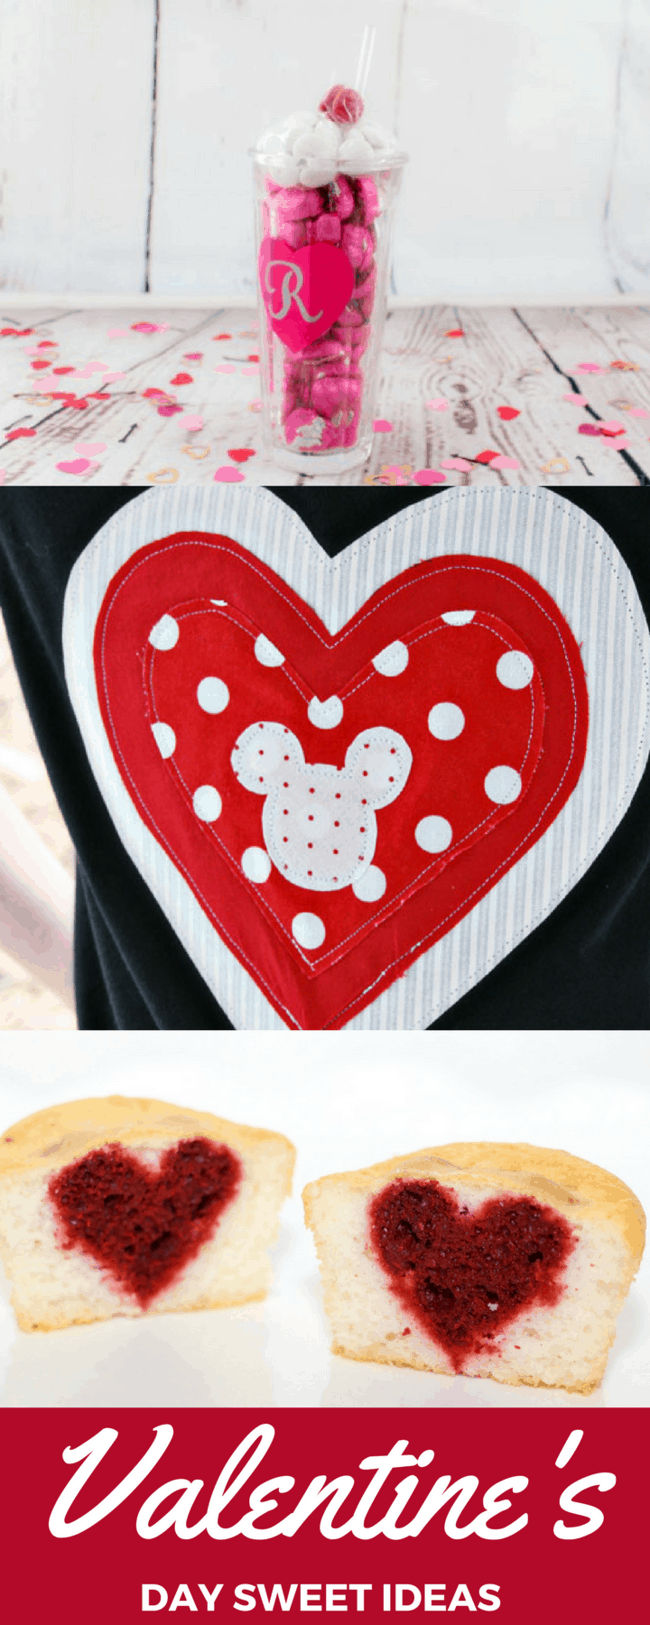 Valentine's Day: Crafts, Recipes, Travel and Disney! Sweet DIY ideas for parents